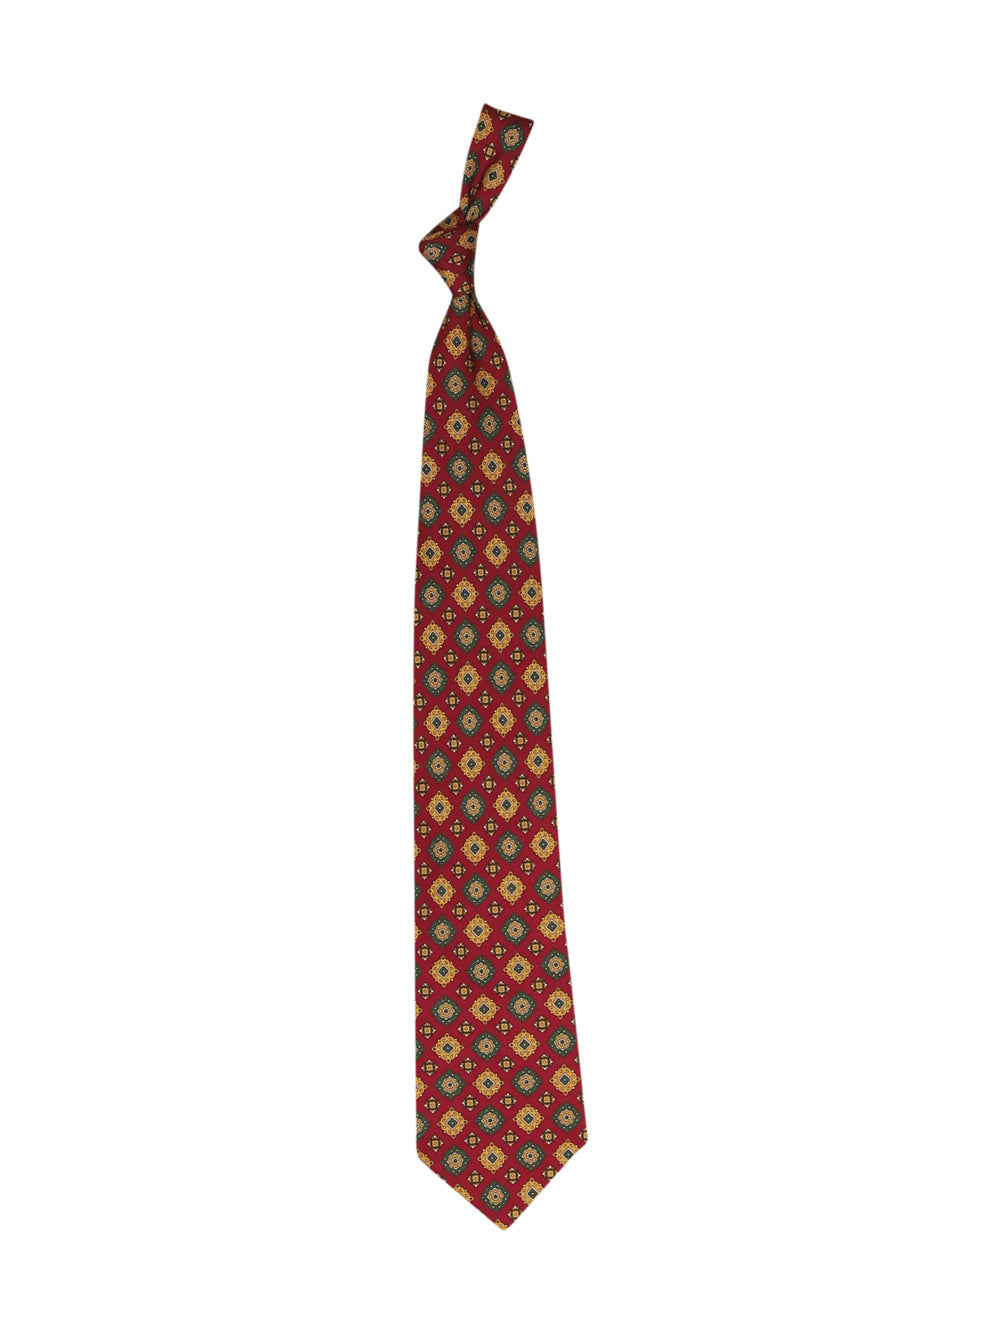 Front photo of Preloved andrew's ties Bordeaux Man's tie - size one-size